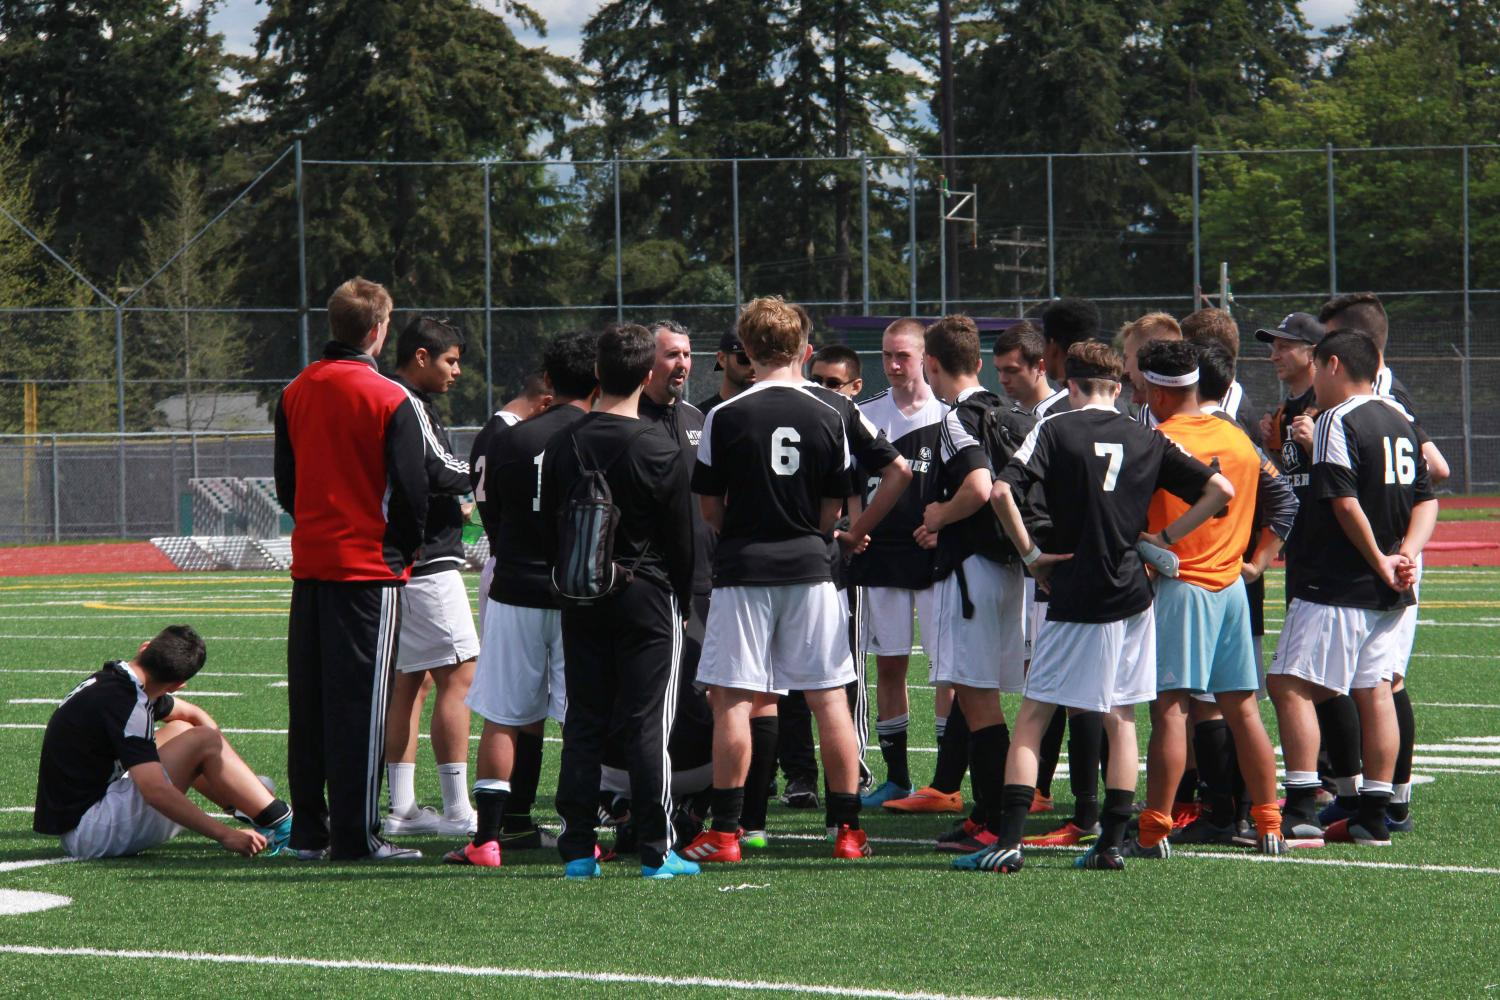 The Hawks gather for a group huddle at the end of the game after suffering a loss in a 2A District match.